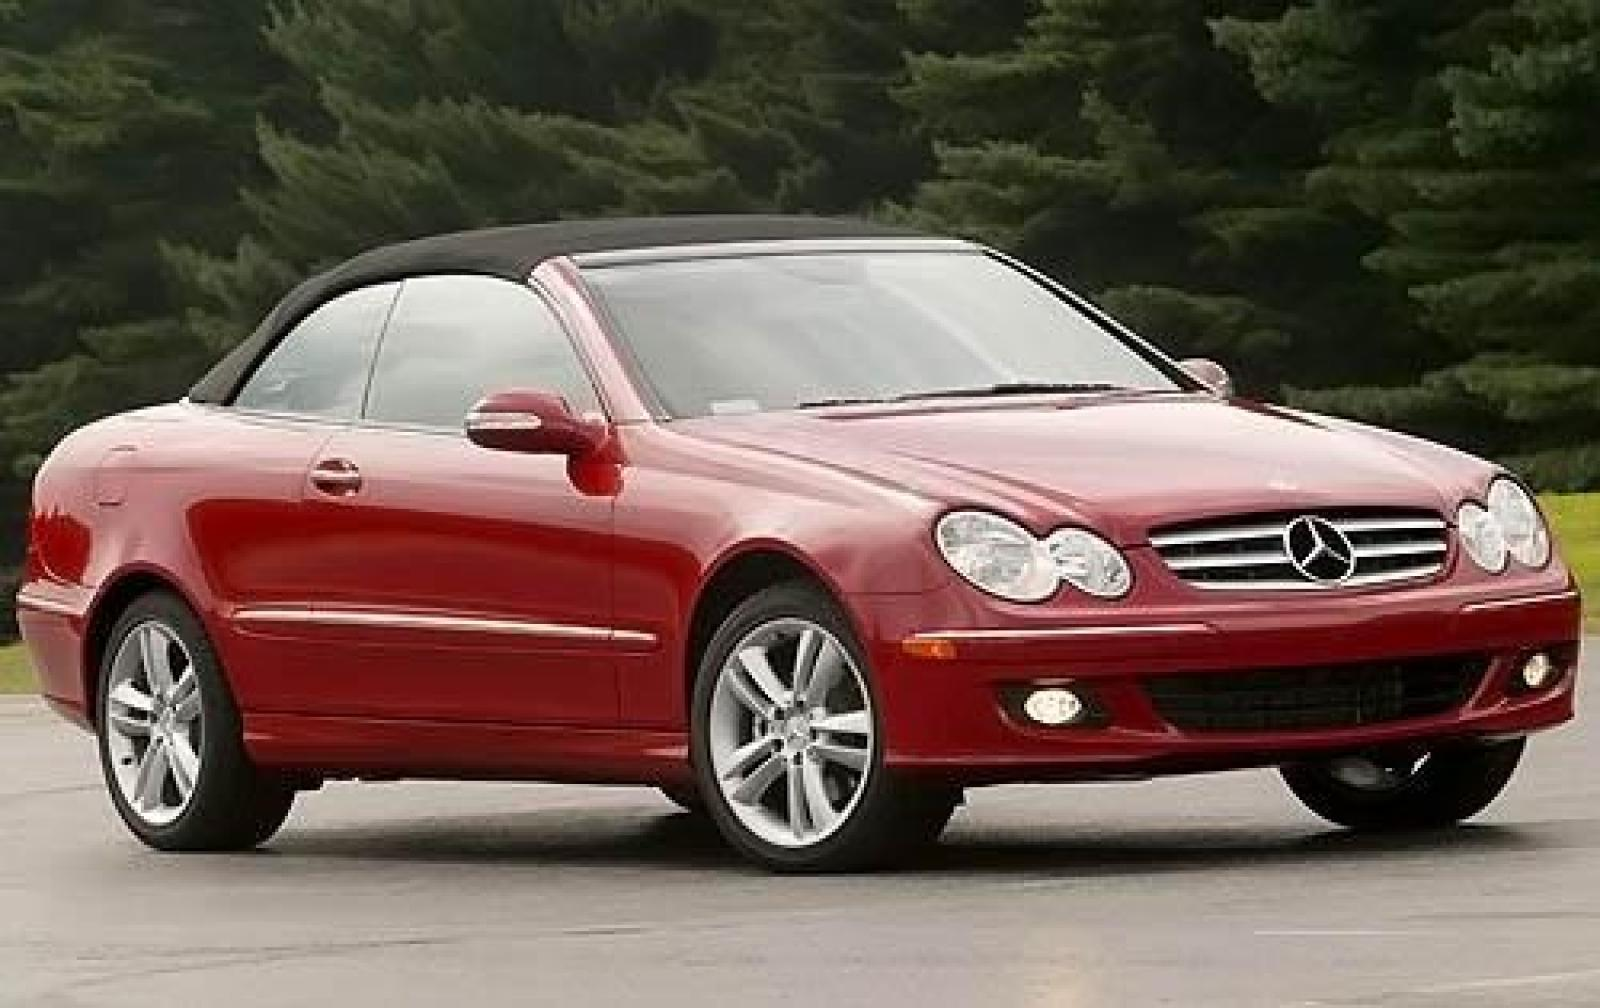 2009 mercedes benz clk class information and photos for Mercedes benz 350 convertible